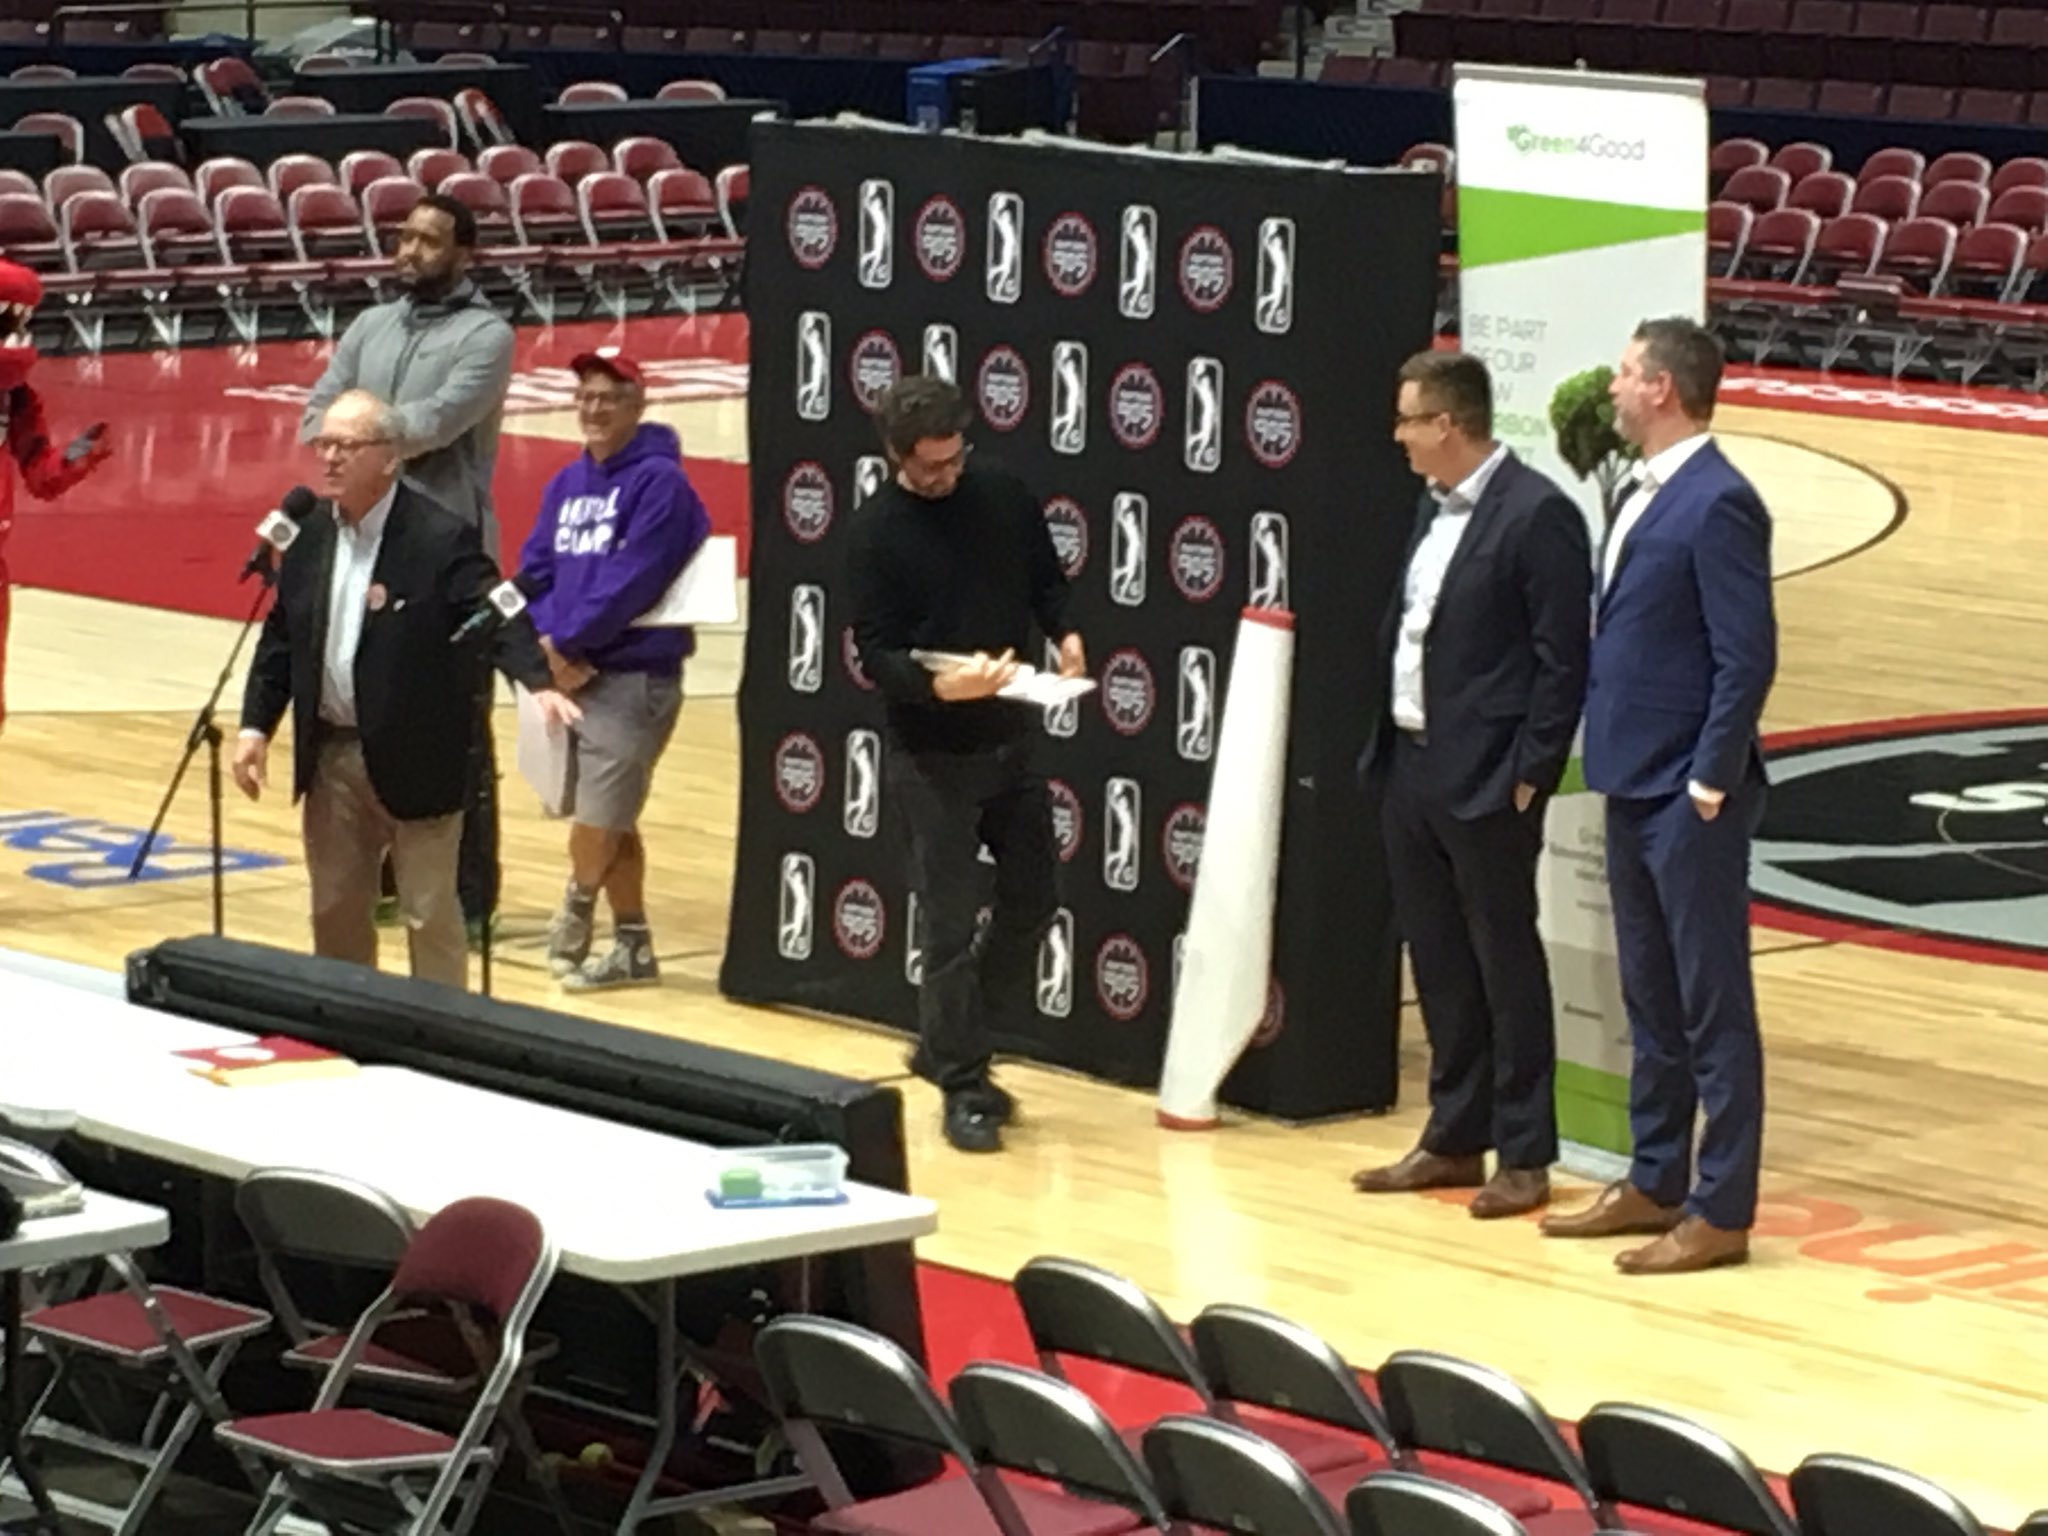 As you can see, I am definitely short than Raptors905 VP John Wiggins (from the Raptors905 celebration in 2019 with First Book Canada).